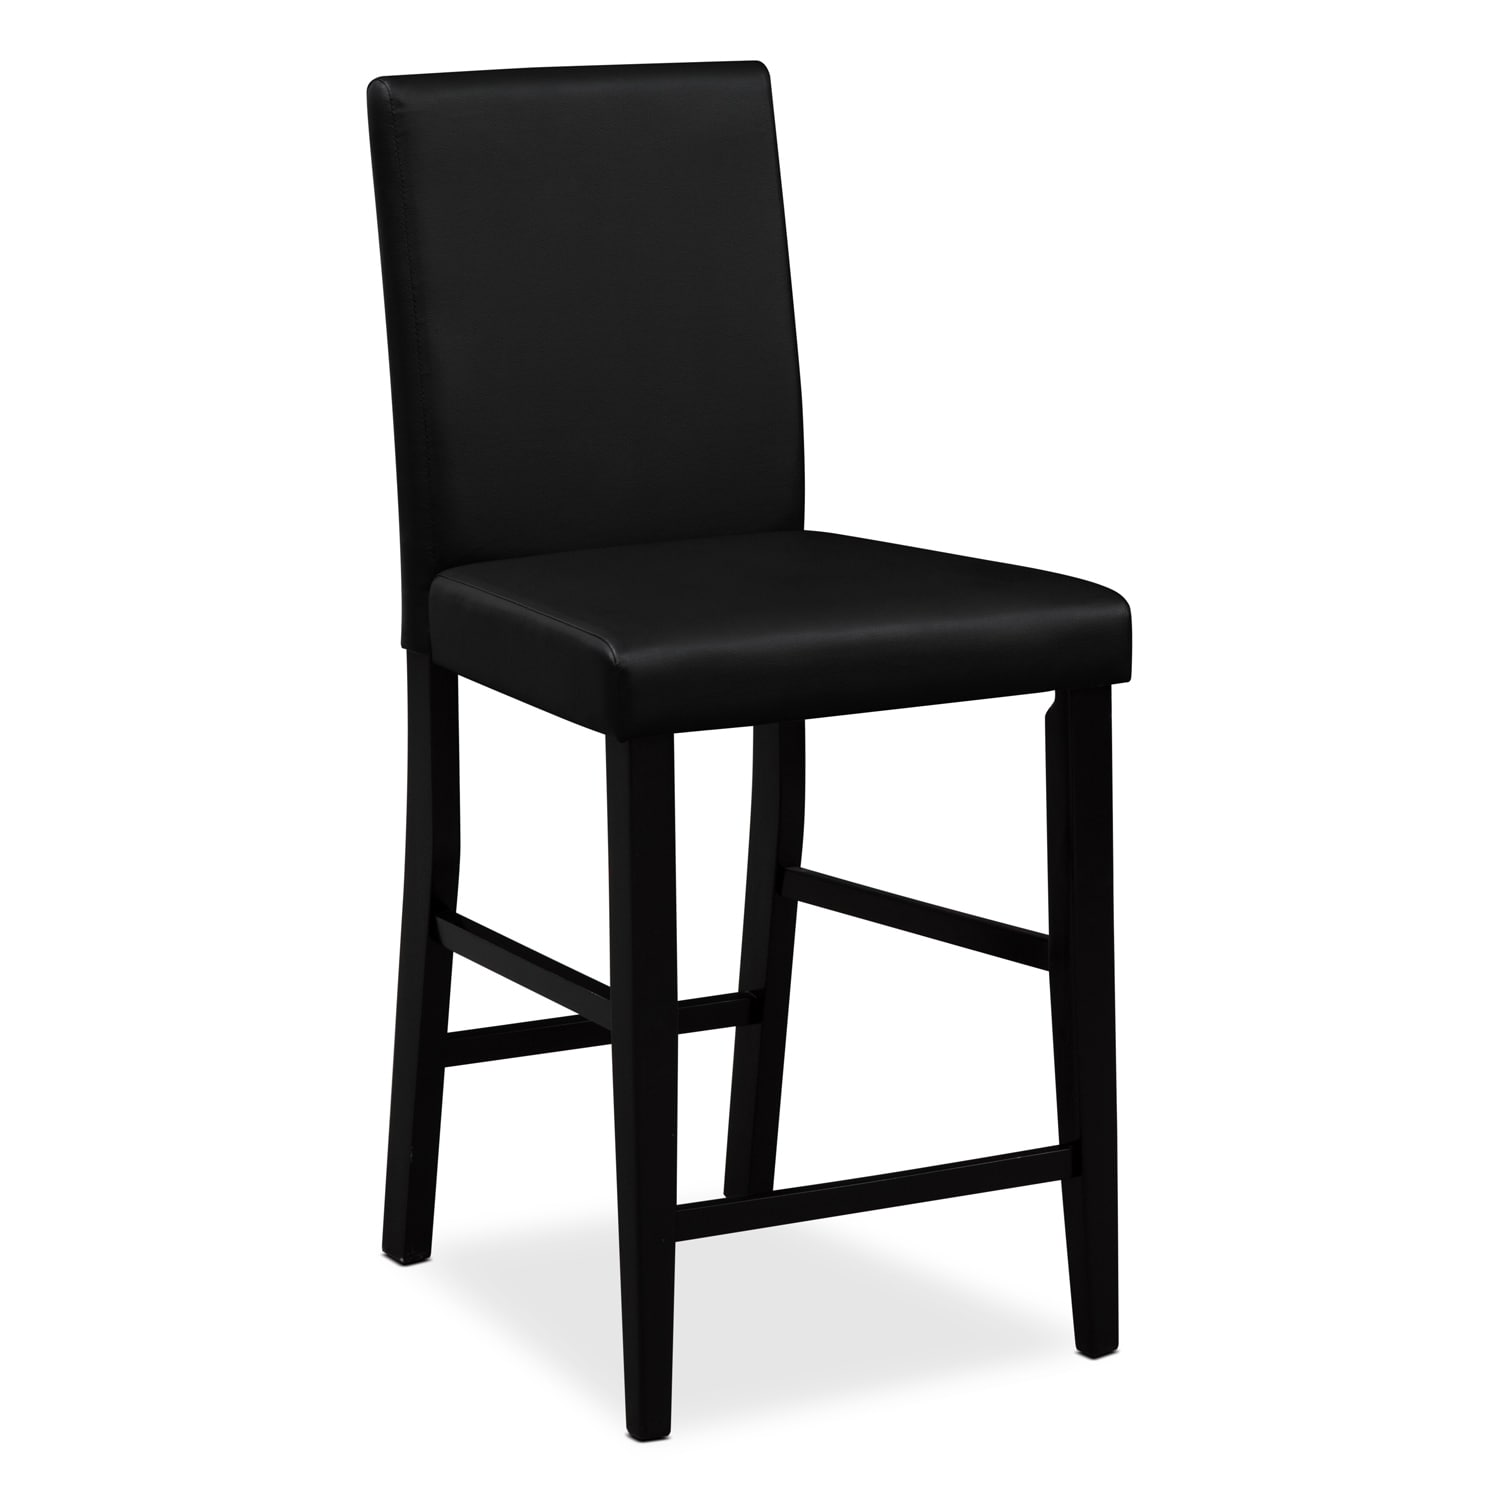 Shadow Counter-Height Stool - Black